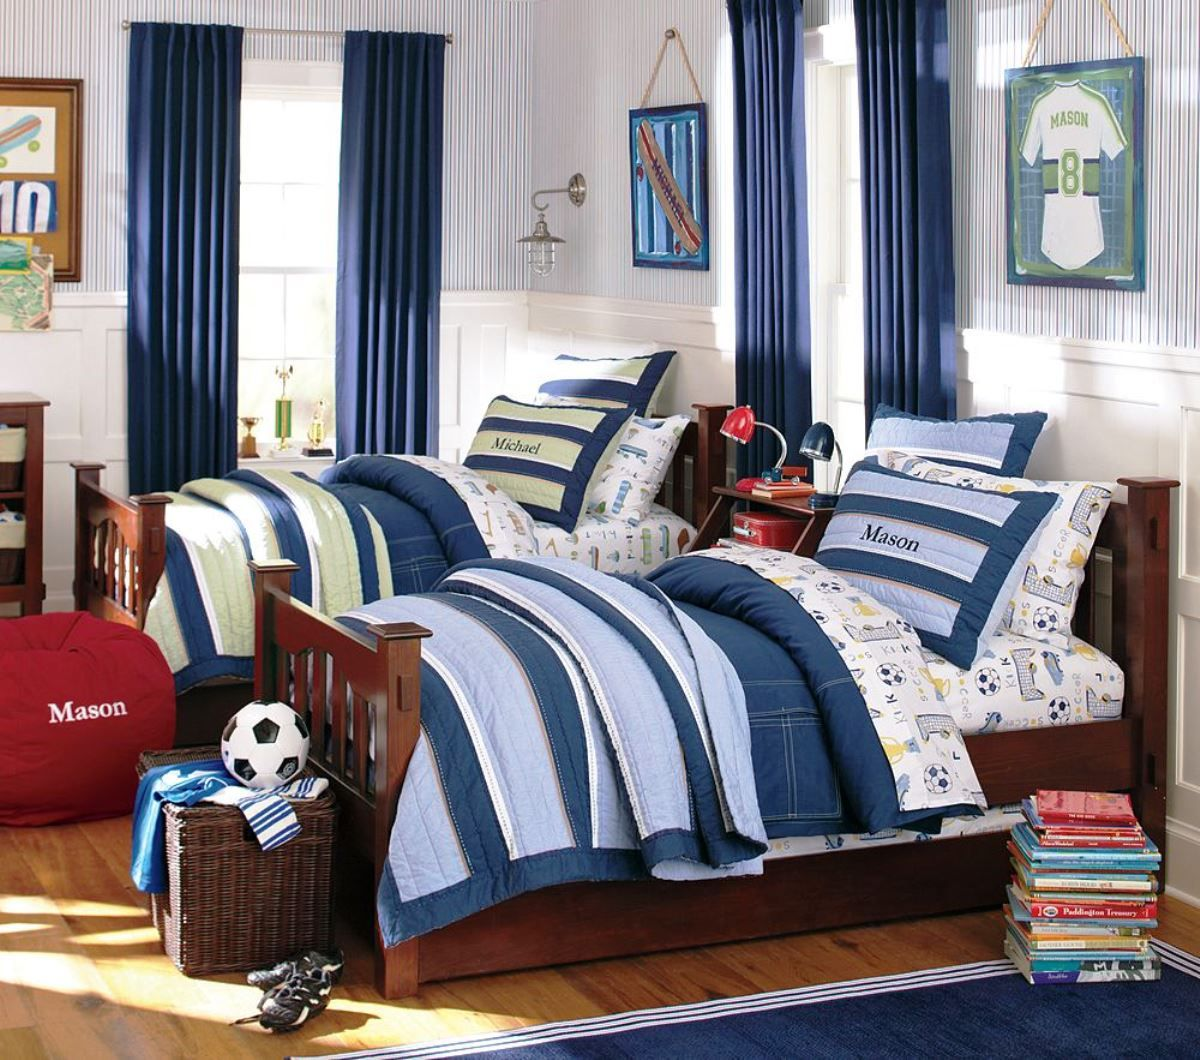 Designs For Boys Bedrooms Inspiration Decorating Design